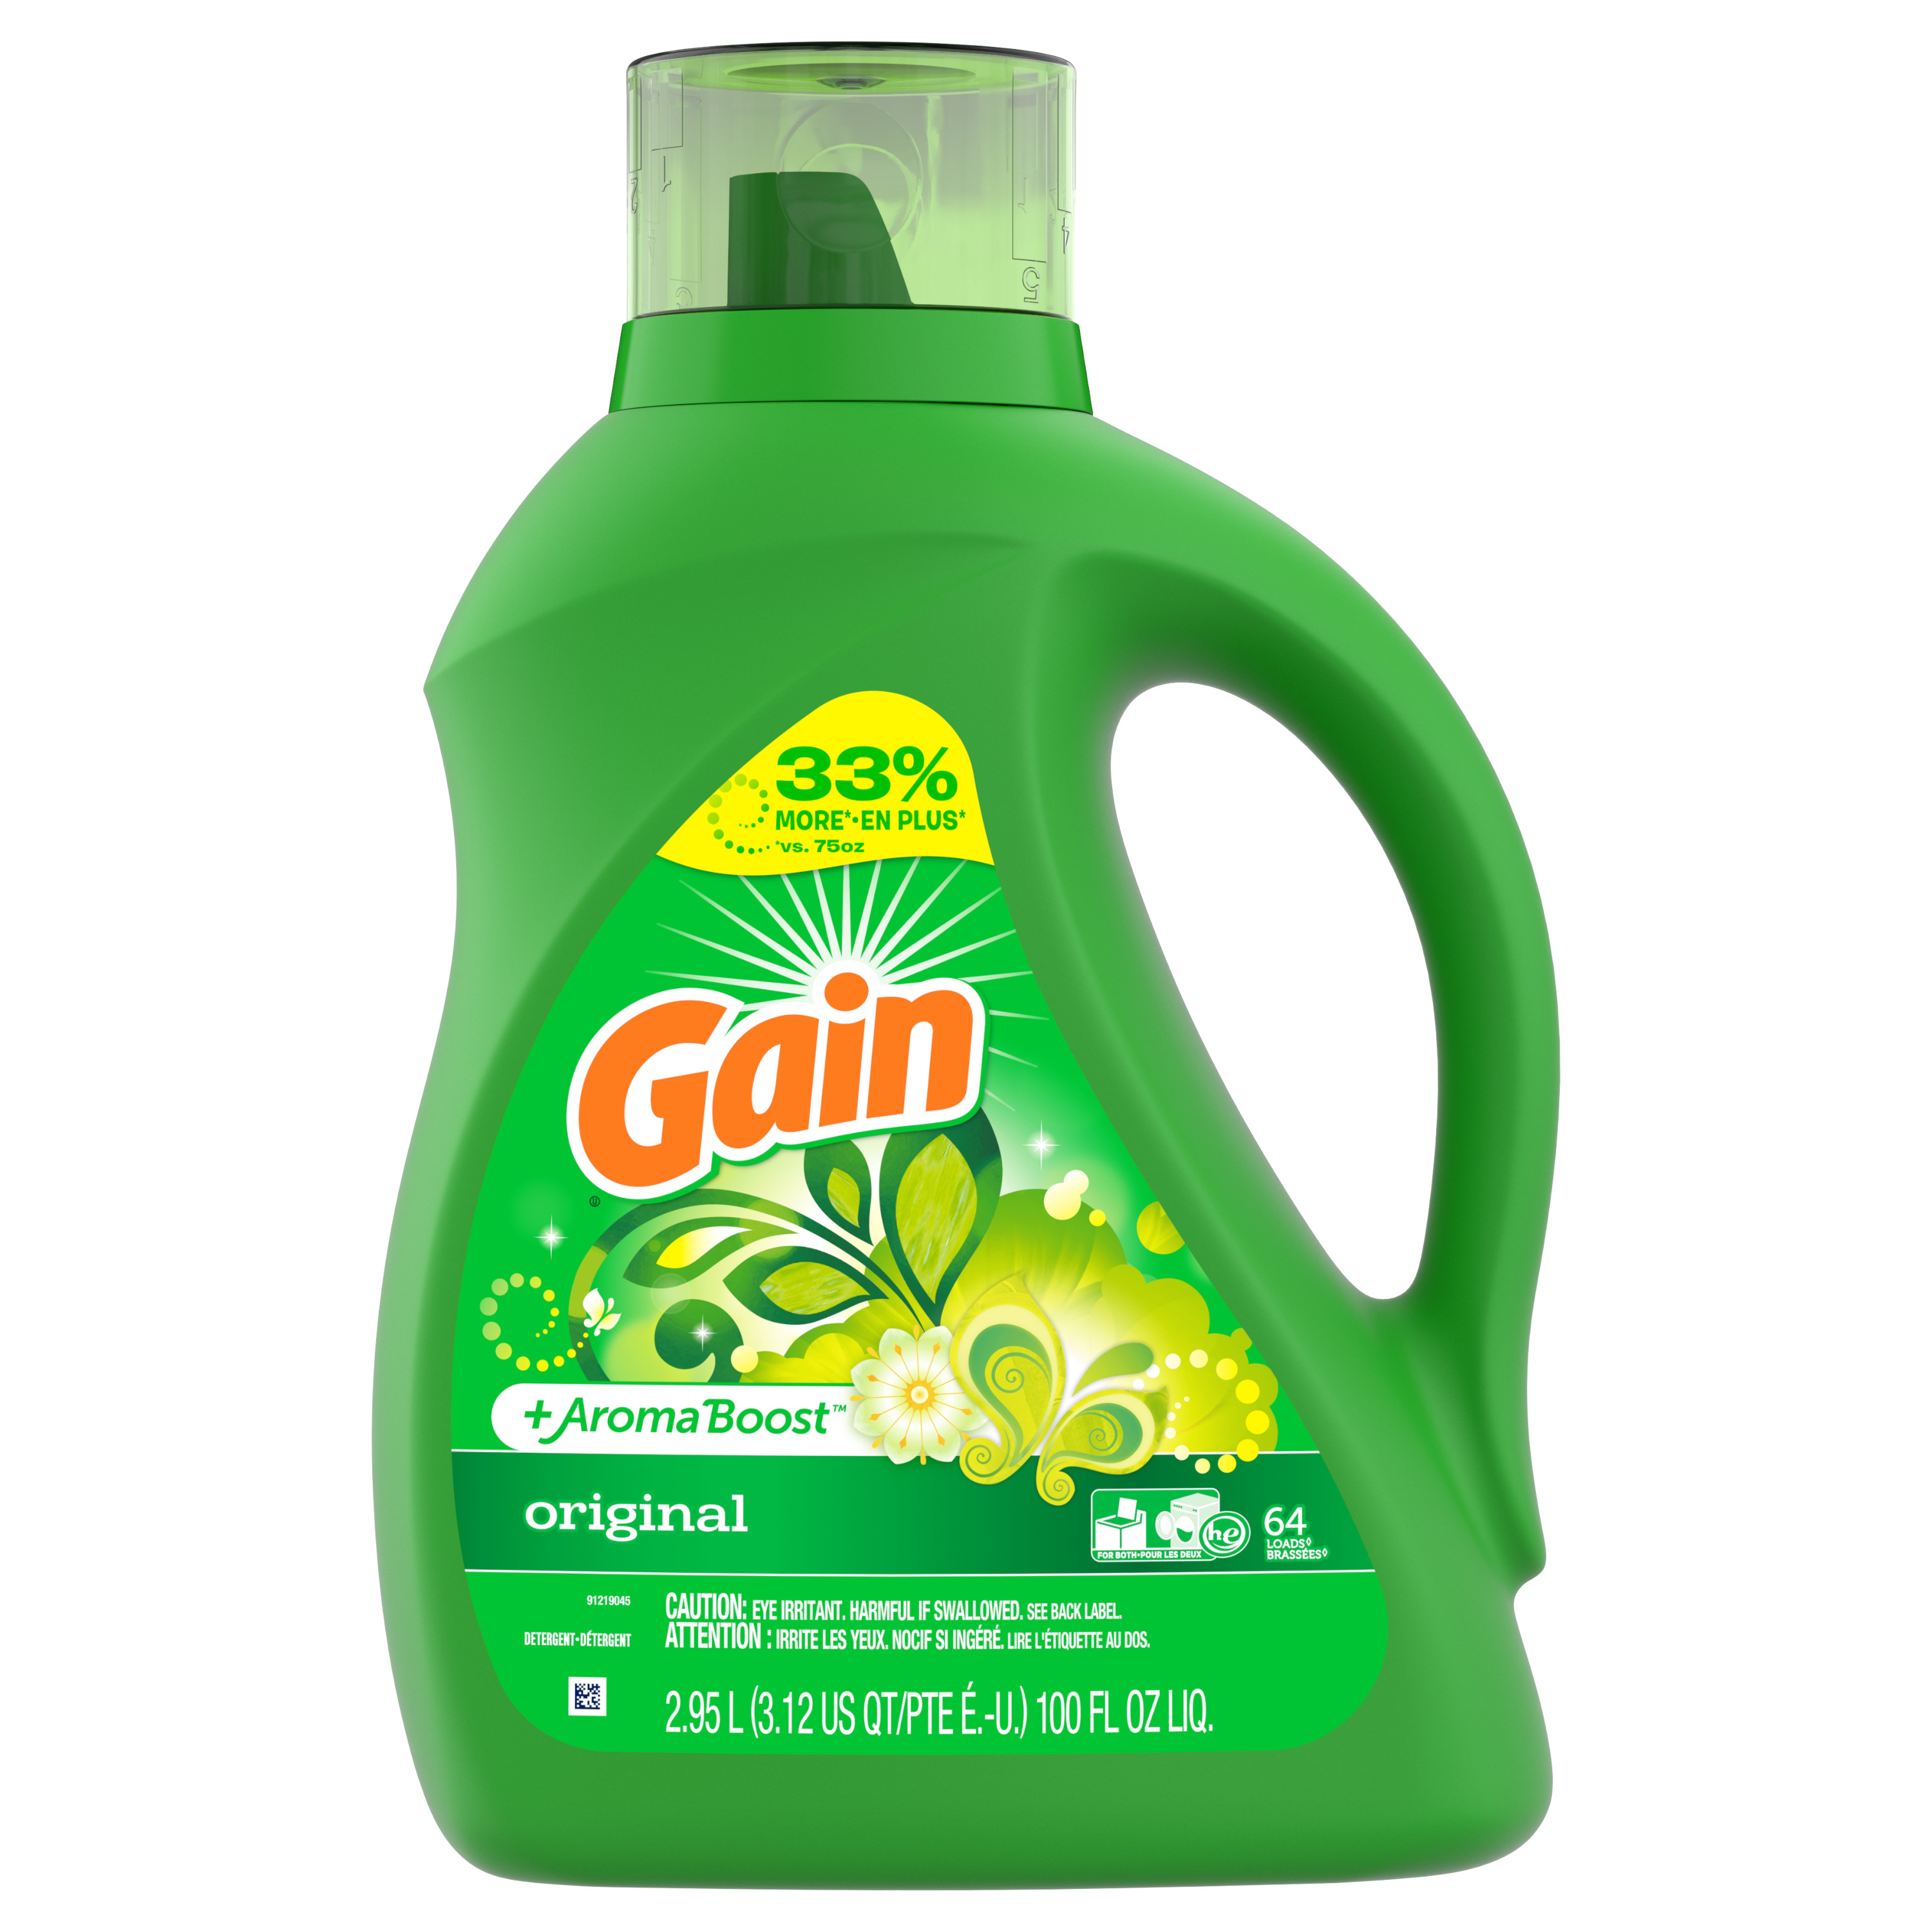 Gain Plus Aroma Boost Liquid Laundry Detergent, Original, 64 Loads, 100 fl oz